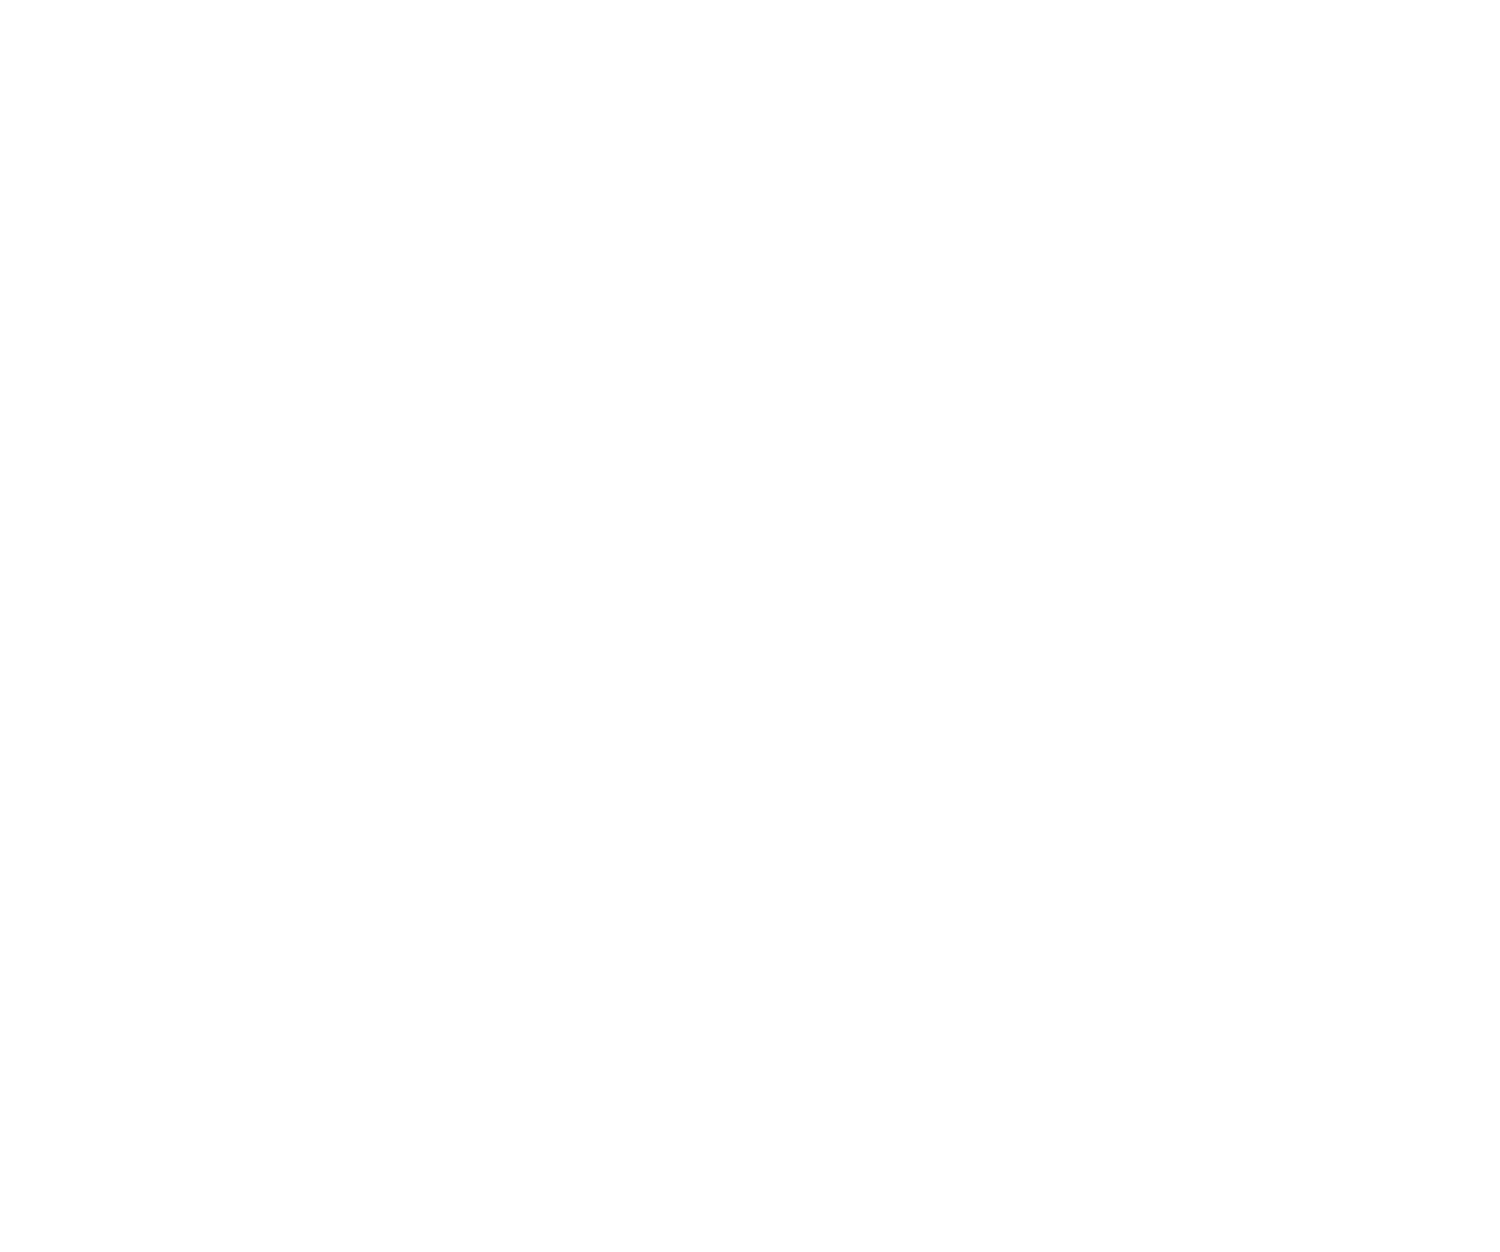 The Lodges at Bachelor View